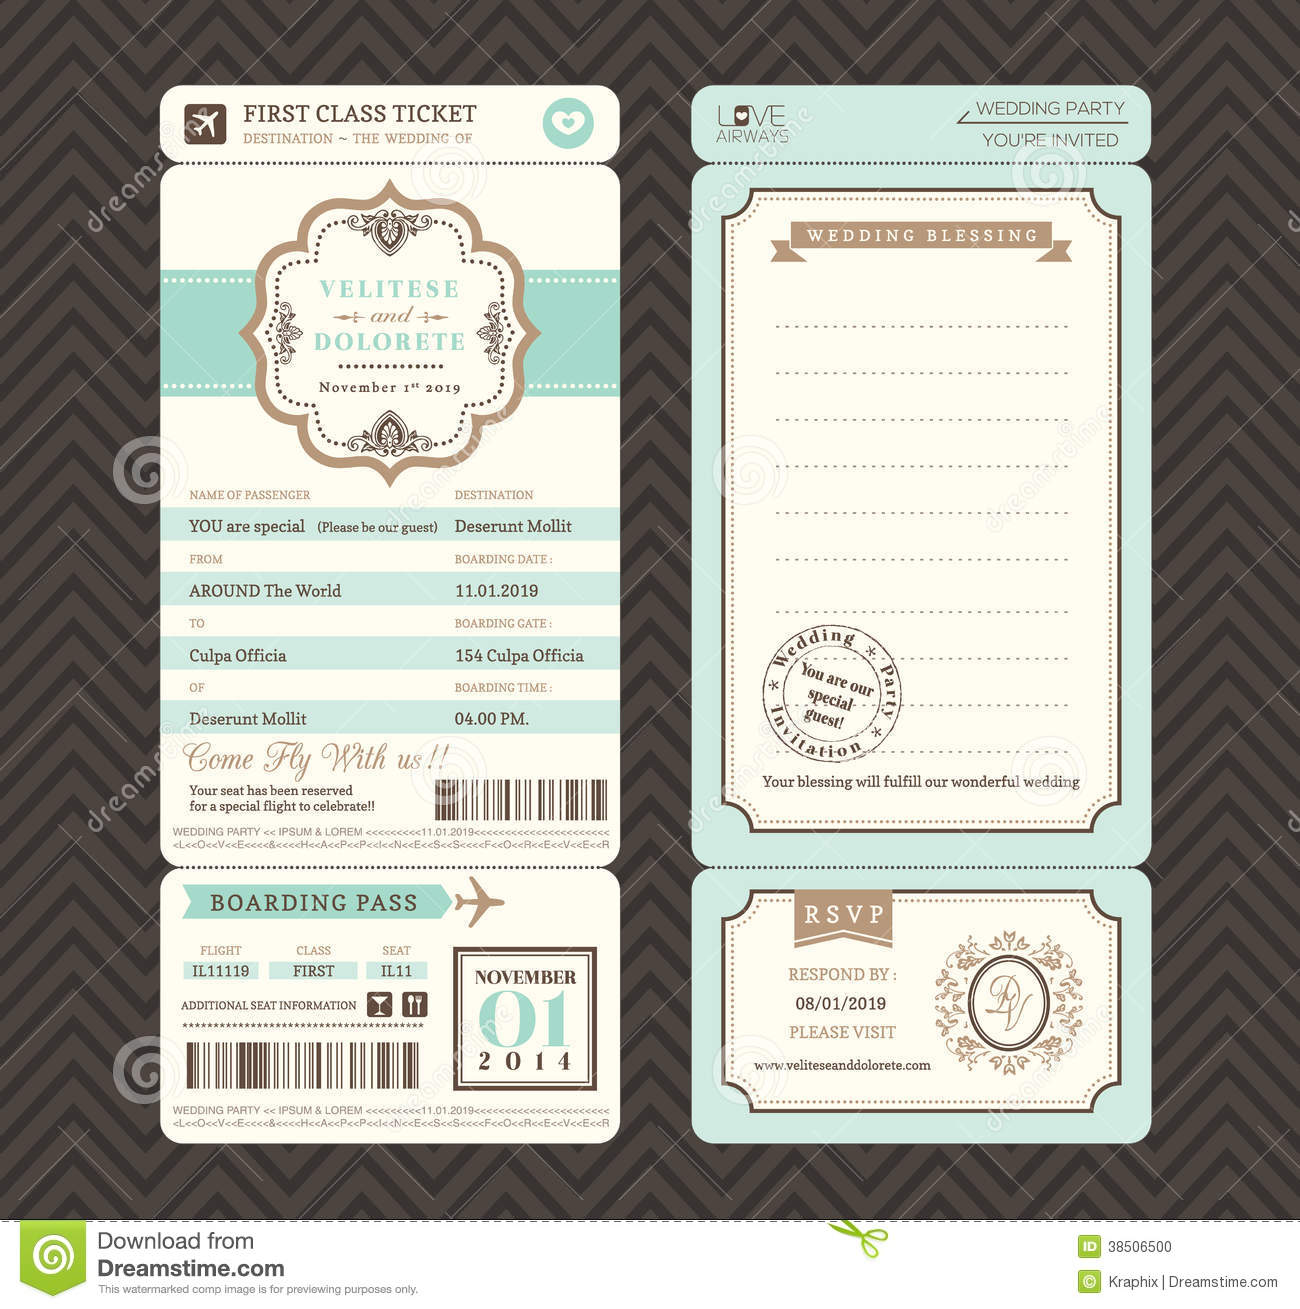 Vintage style boarding pass ticket wedding invitation template stock vintage style boarding pass ticket wedding invitation template stopboris Image collections